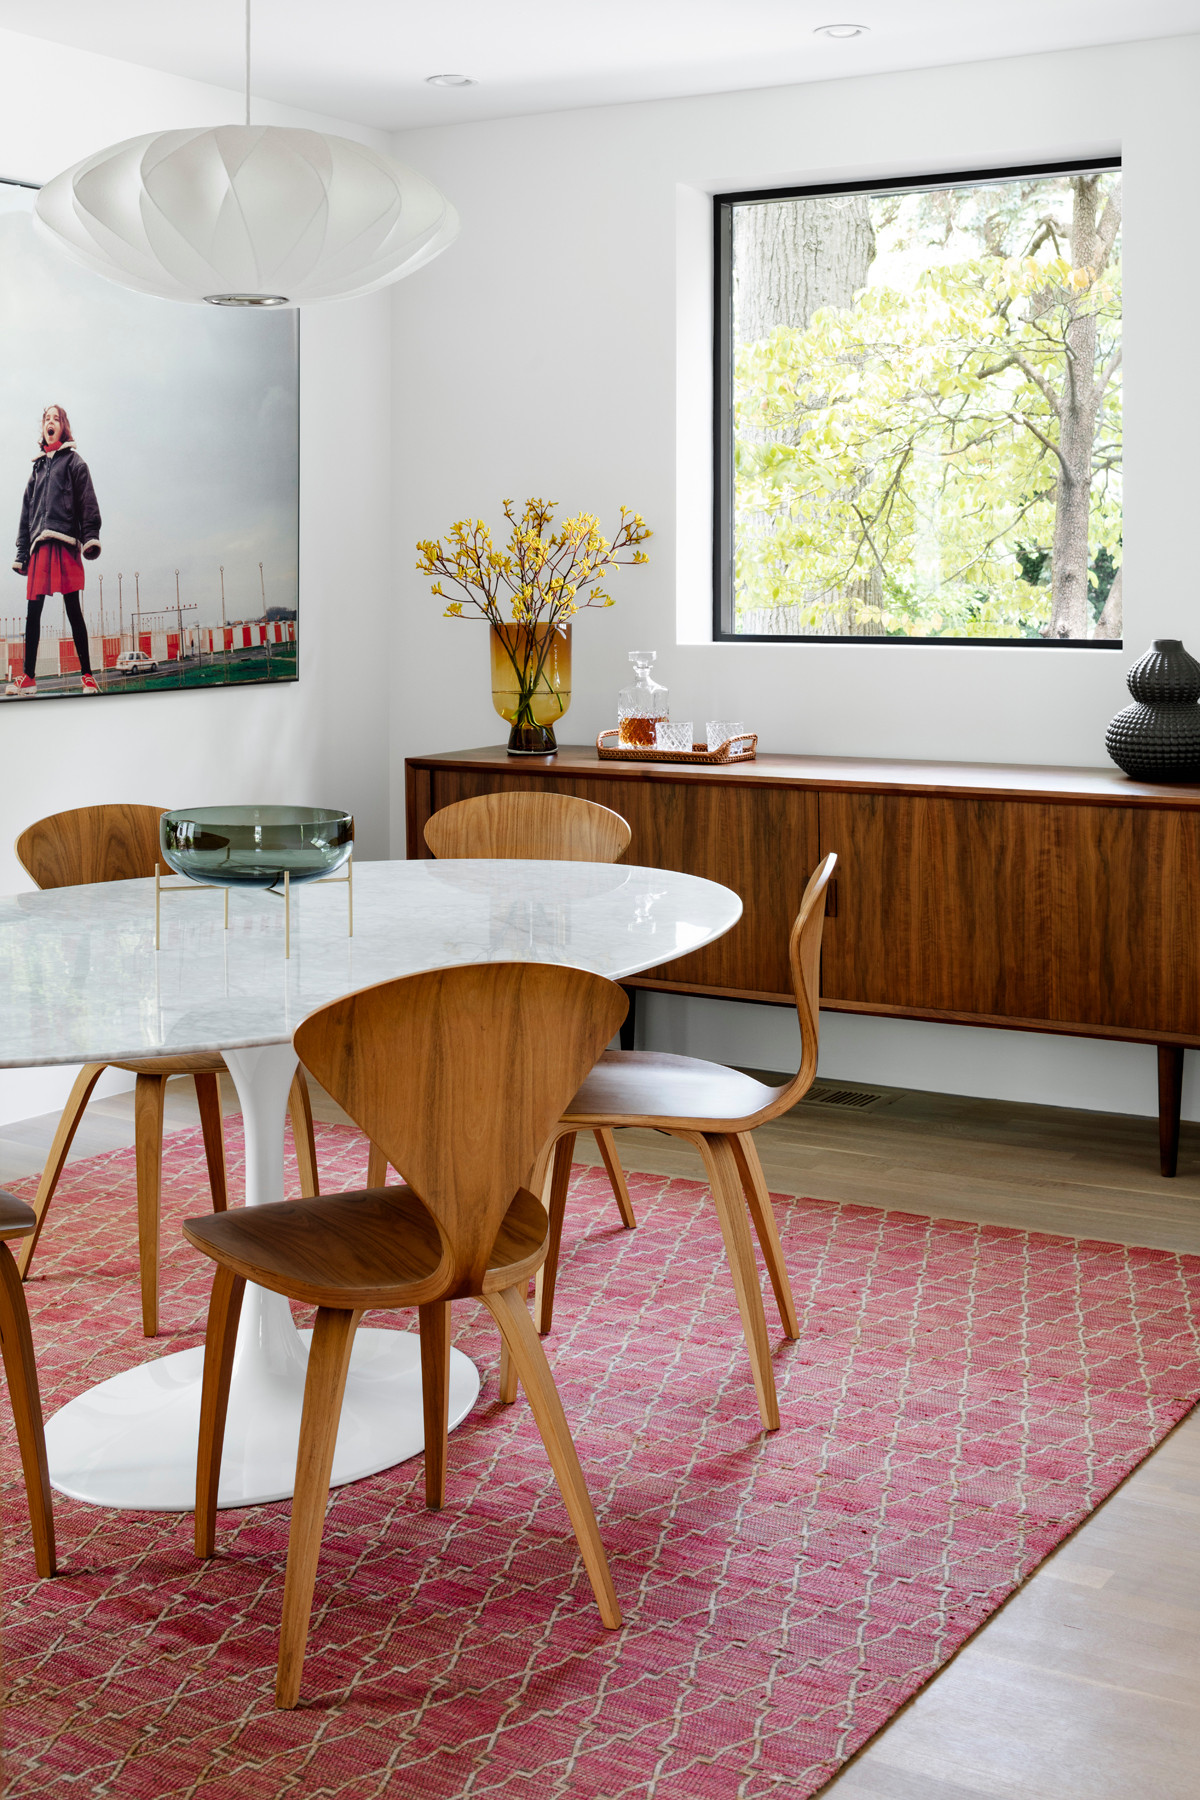 Adapting a mid-century modern style allows you to try out iconic decor pieces like the curvy Cherner chair